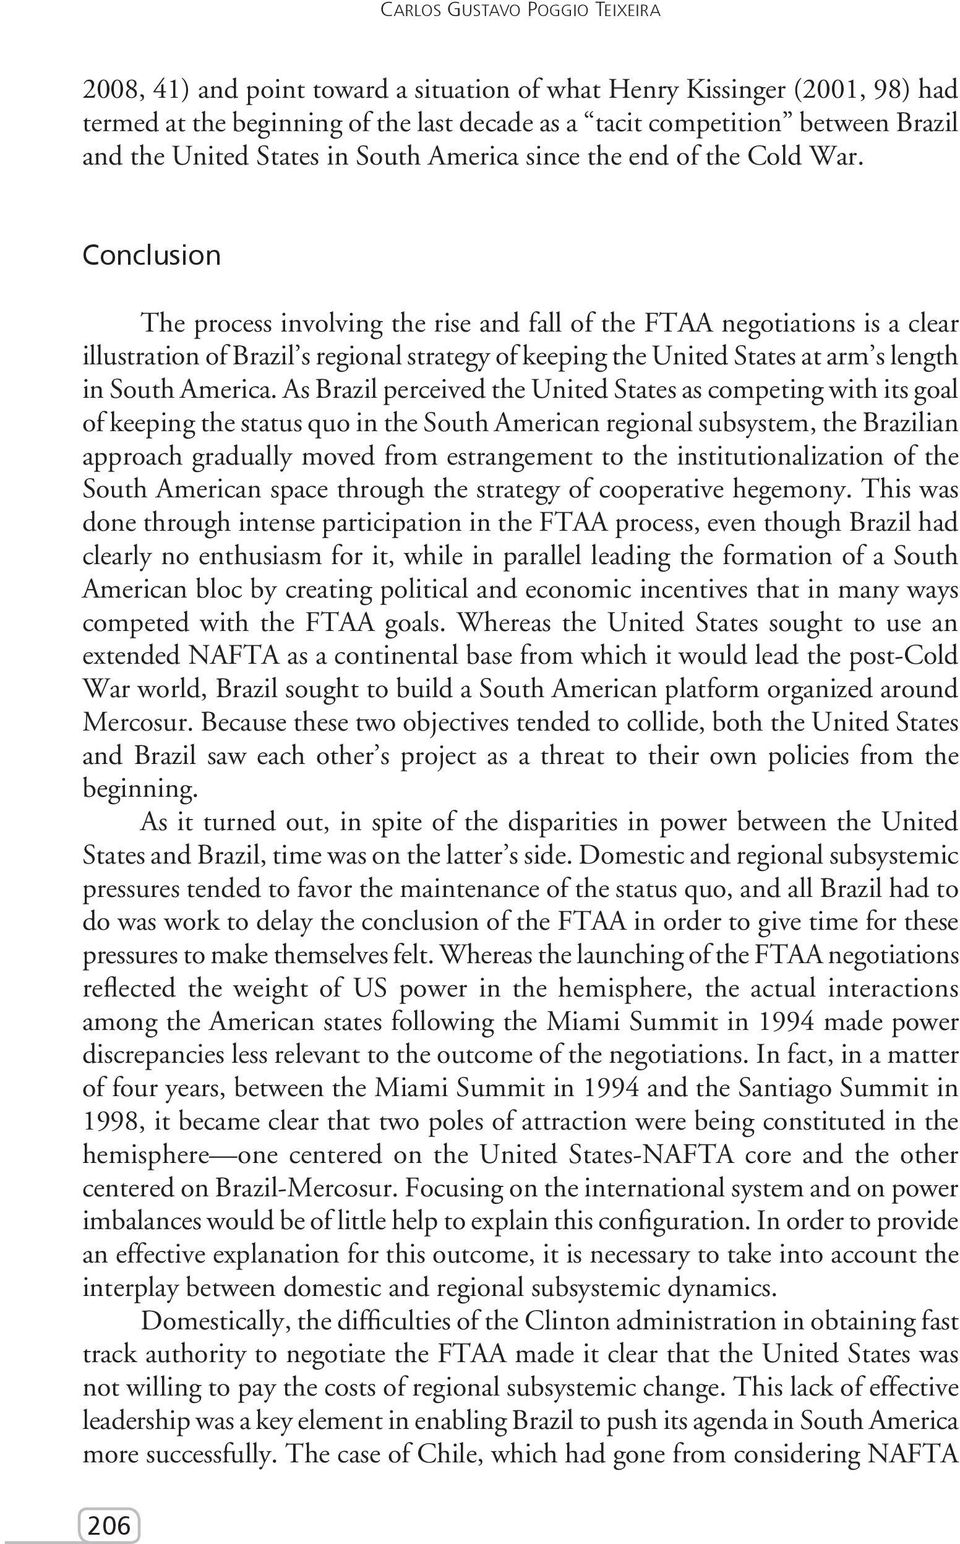 Conclusion The process involving the rise and fall of the FTAA negotiations is a clear illustration of Brazil s regional strategy of keeping the United States at arm s length in South America.